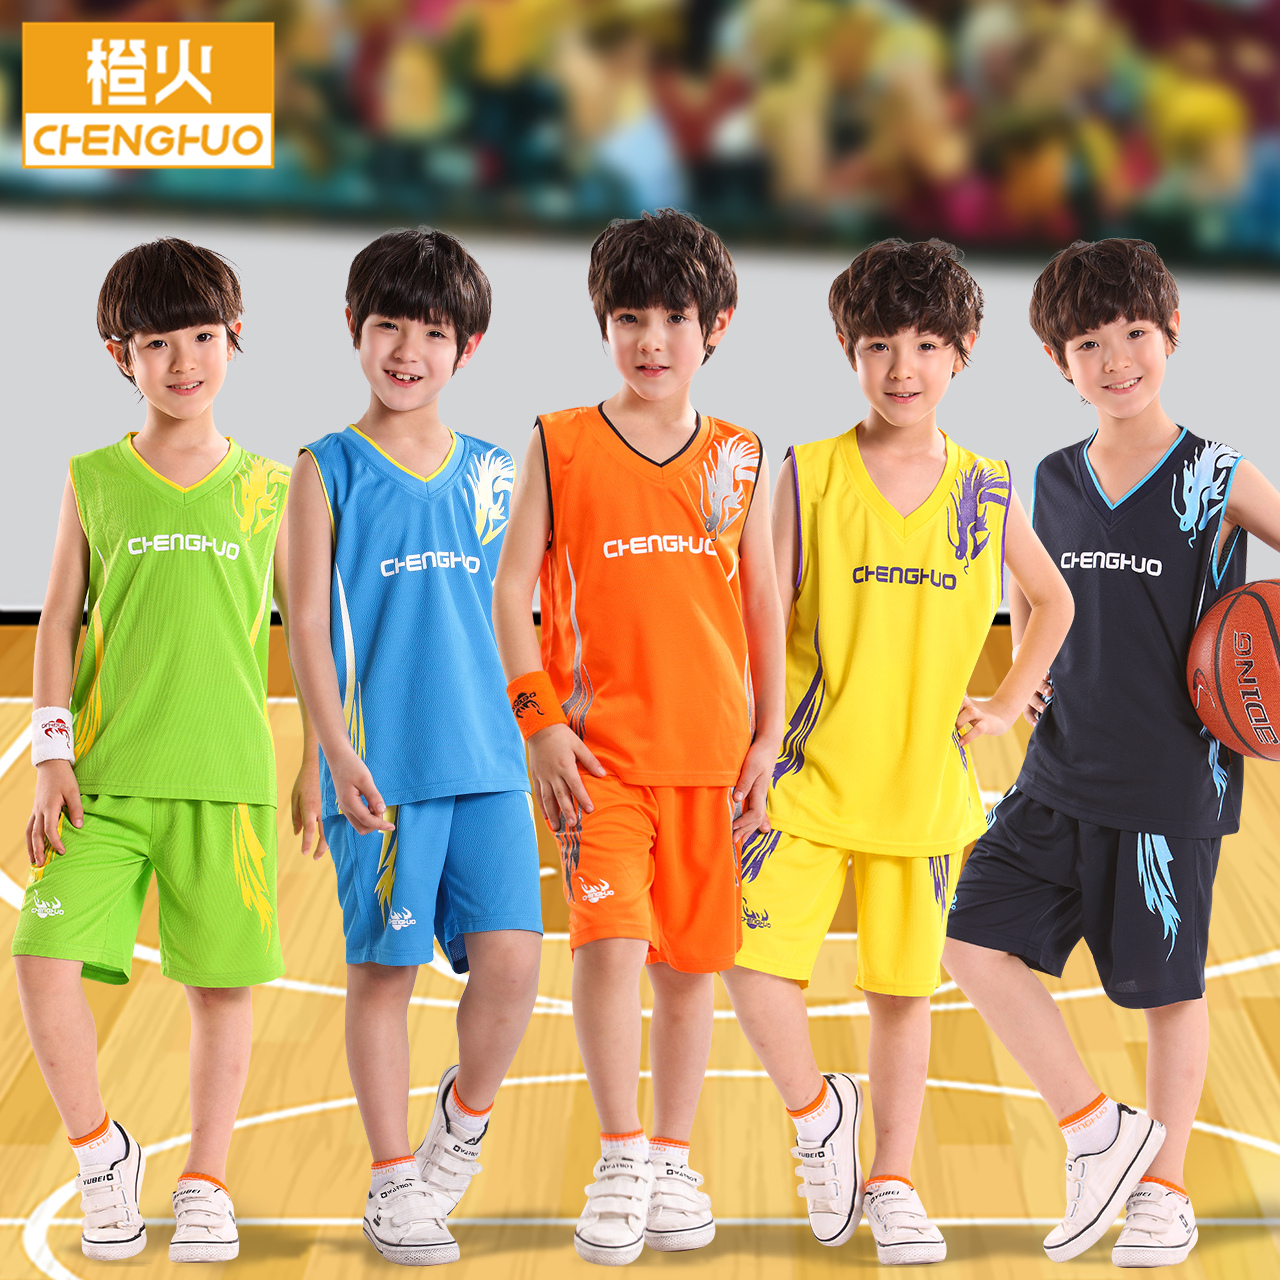 bbd8a64ecce ... boys basketball fitness kindergarten custom jersey Primary School  quick-drying sports. Zoom · lightbox moreview · lightbox moreview ·  lightbox moreview ...